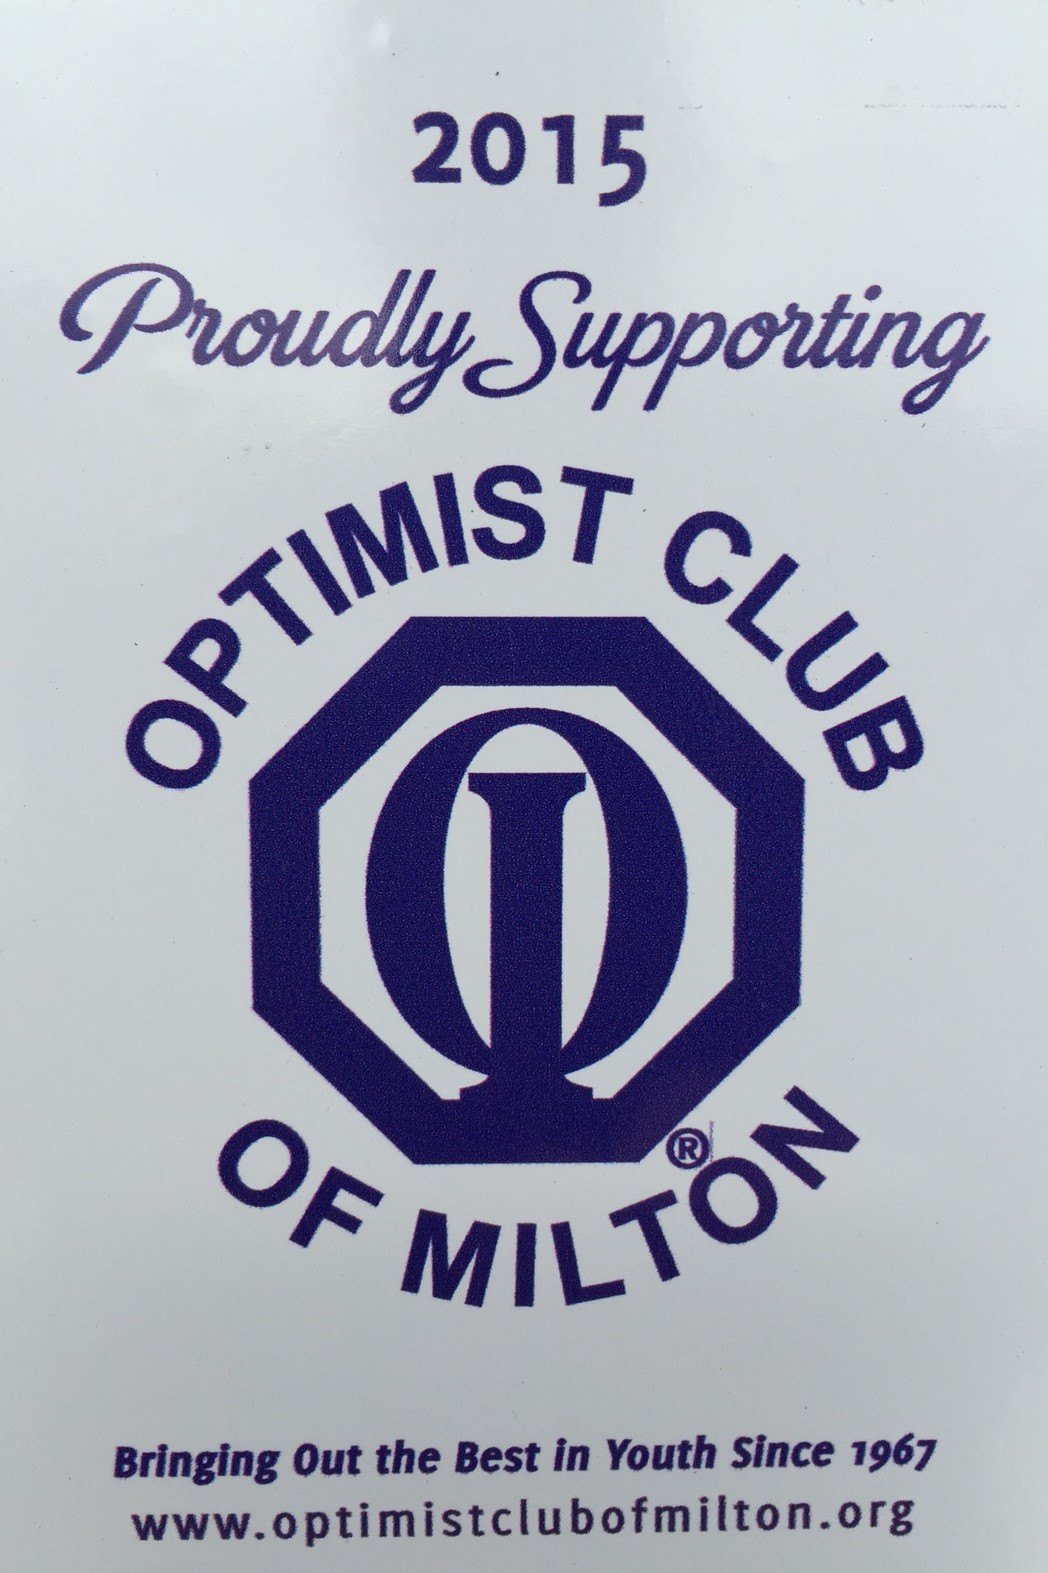 Optimist club sticker for door of Optical